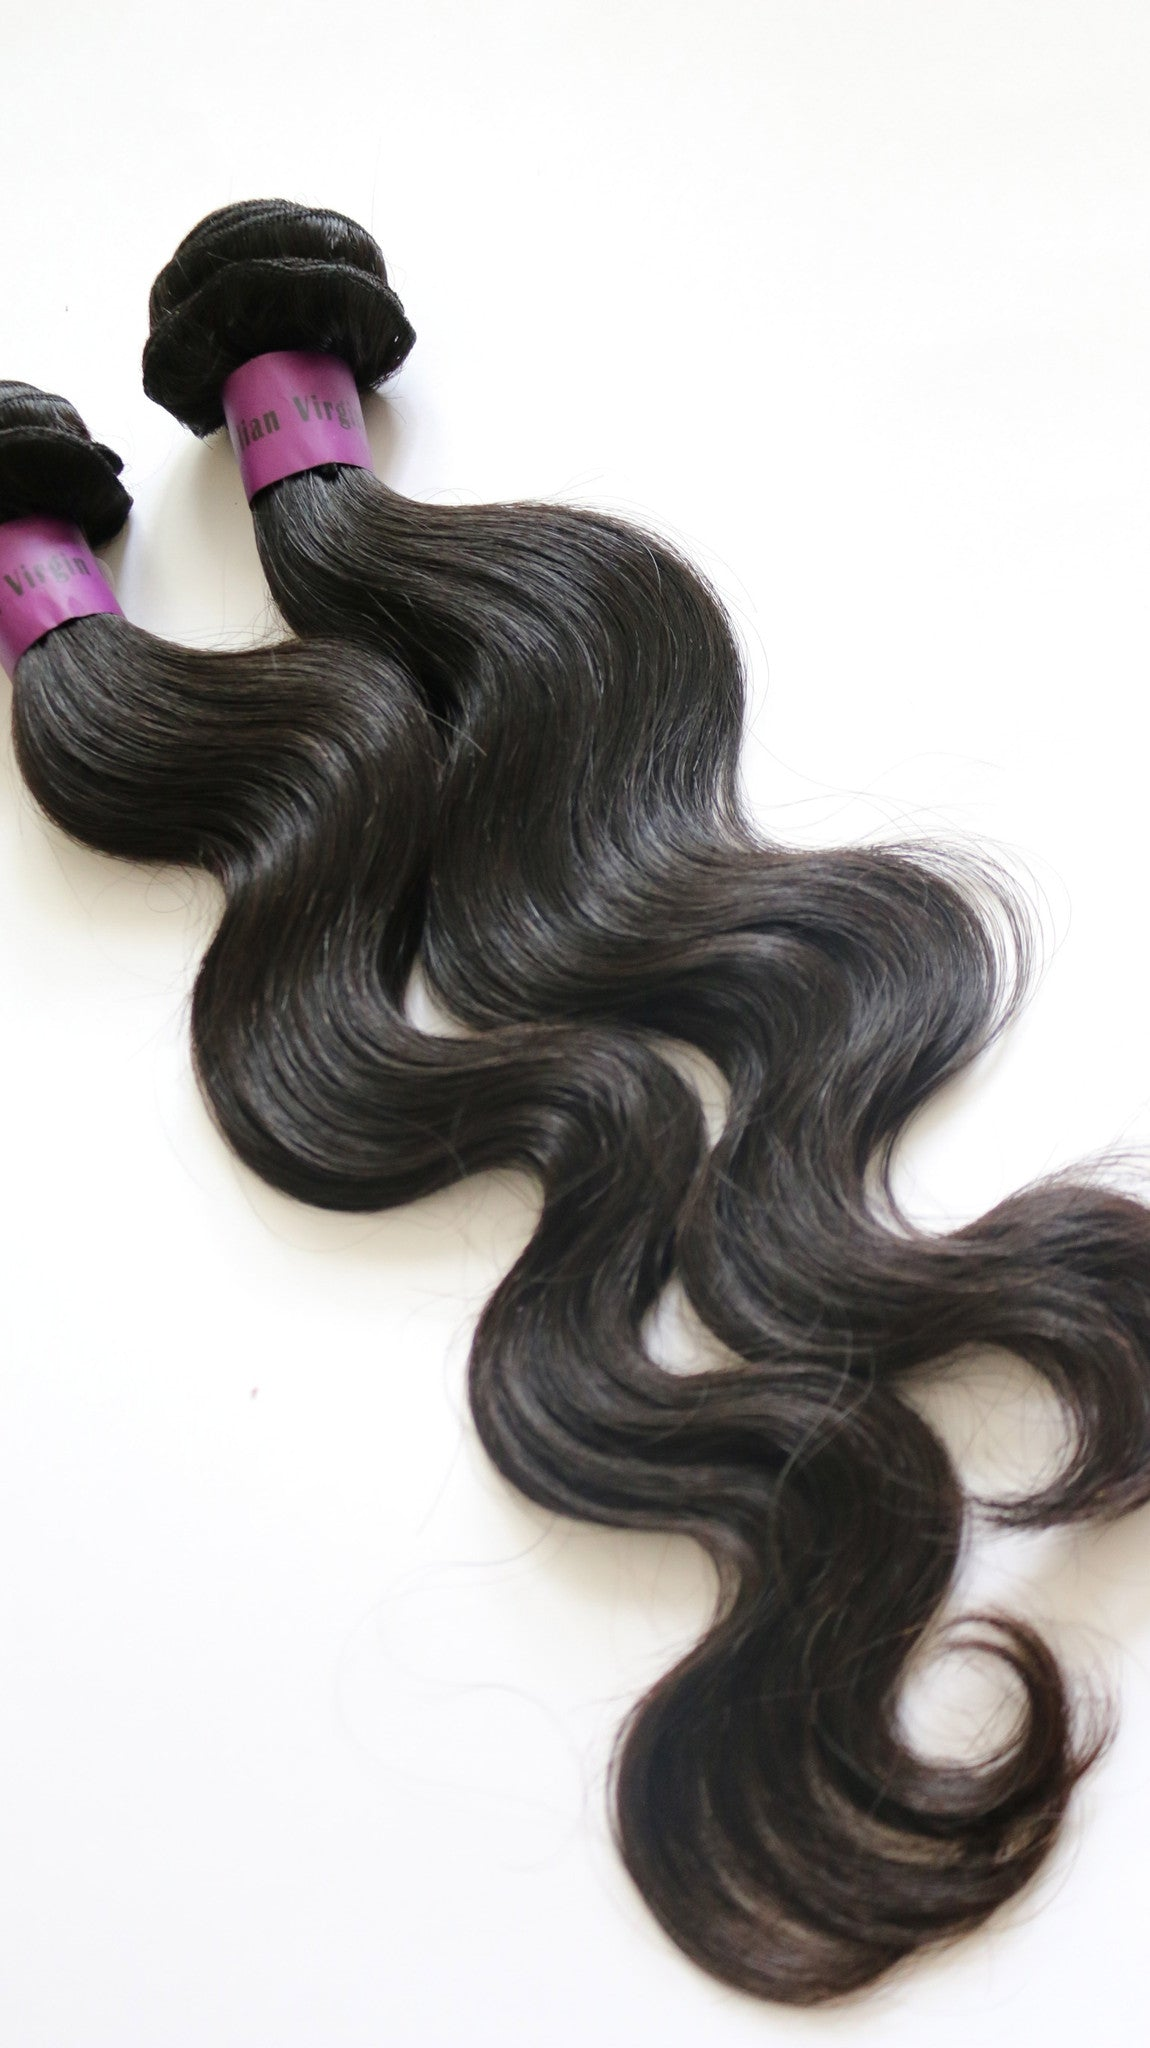 RADIANCE BRAZILIAN BODY WAVE! CHRISTMAS SALE!